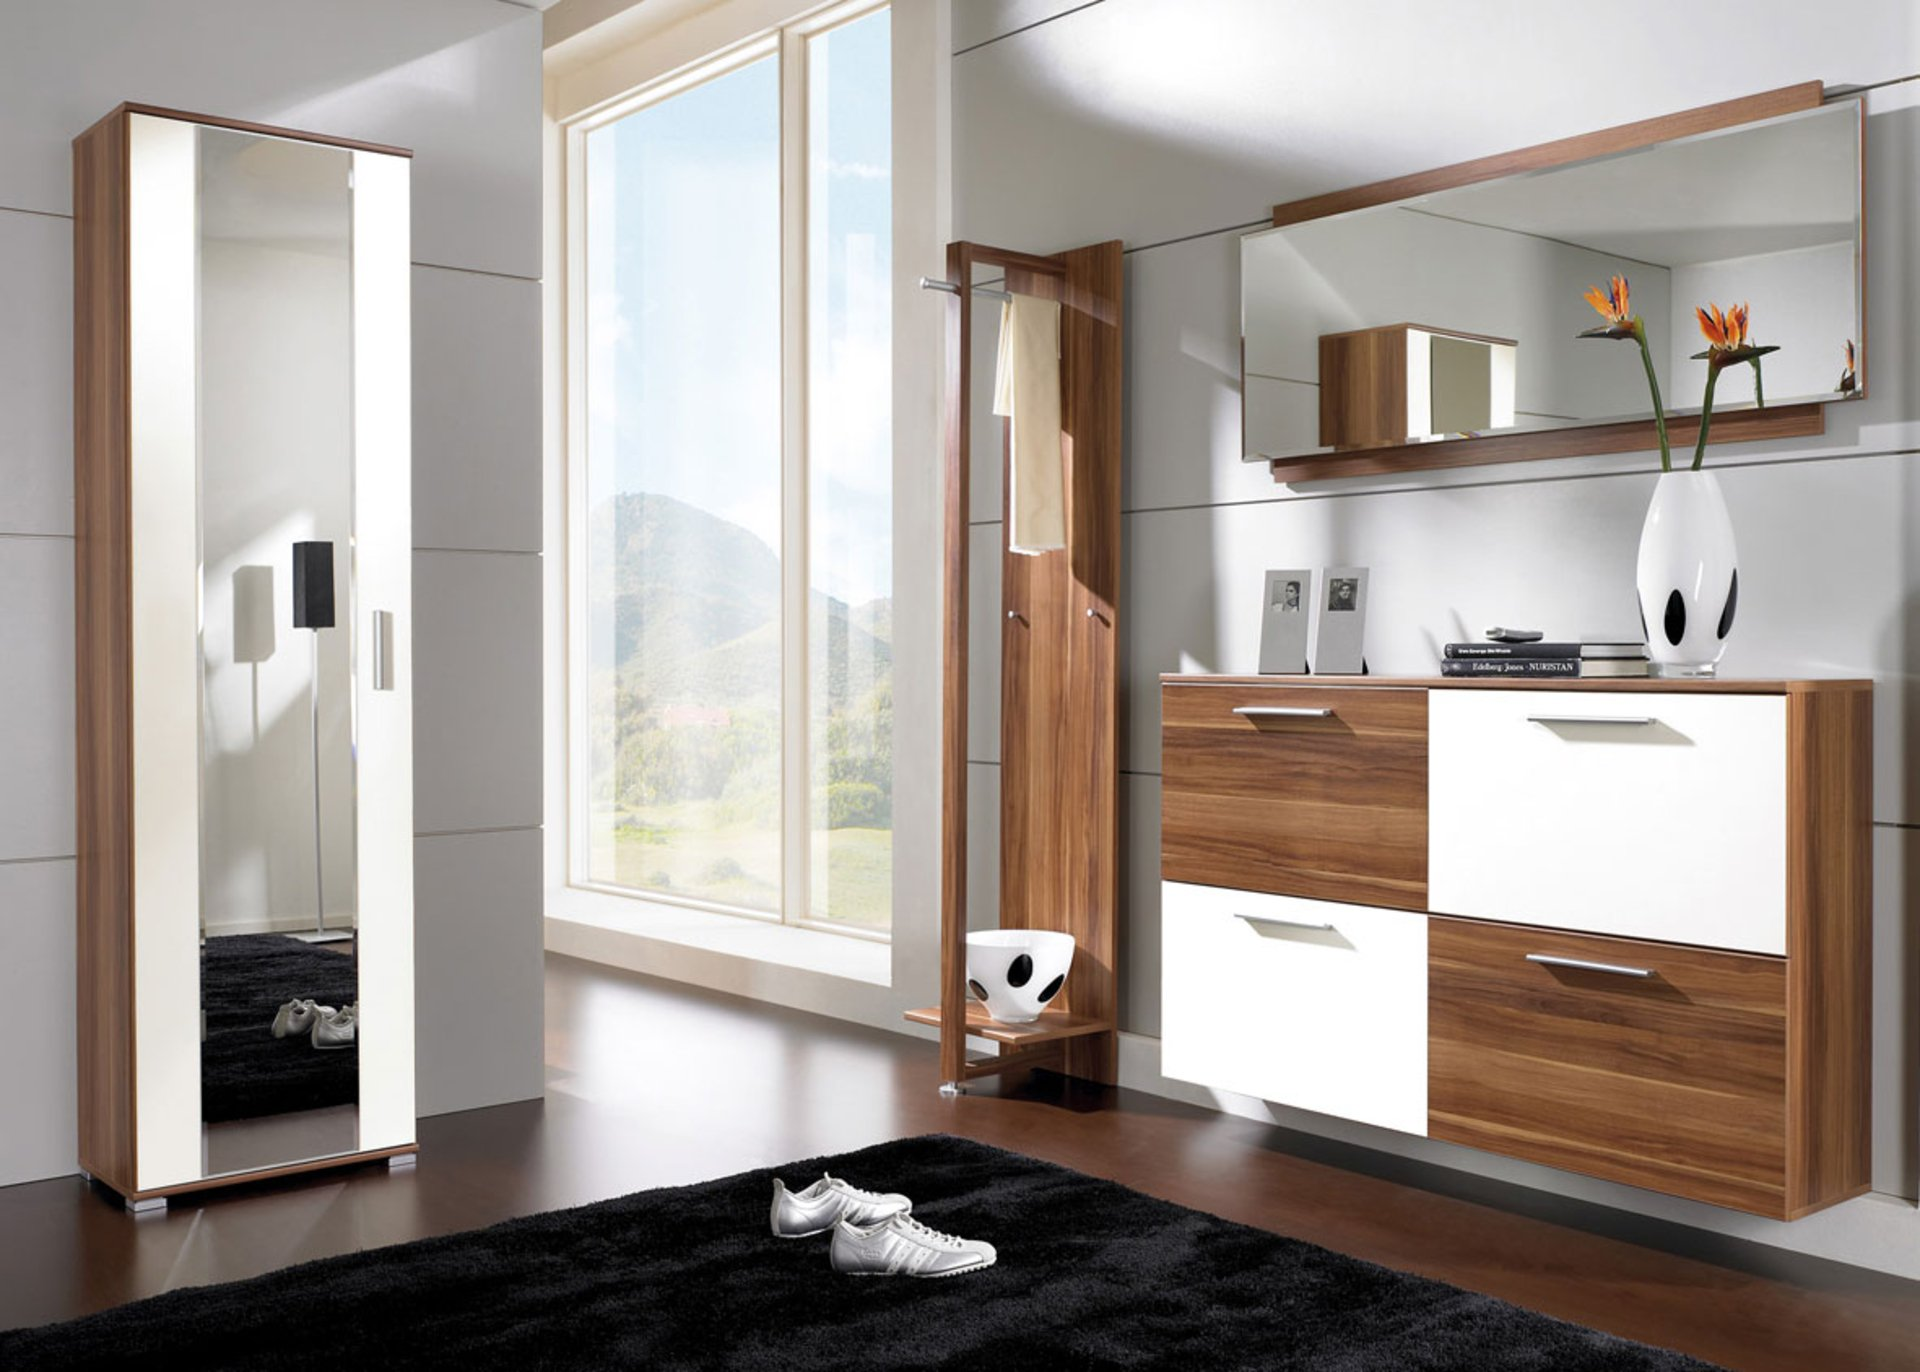 modern-hallway-furniture-storage-design-with-wood-wall-mounted-cabinet-mirror-and-small-mudroom-ideas